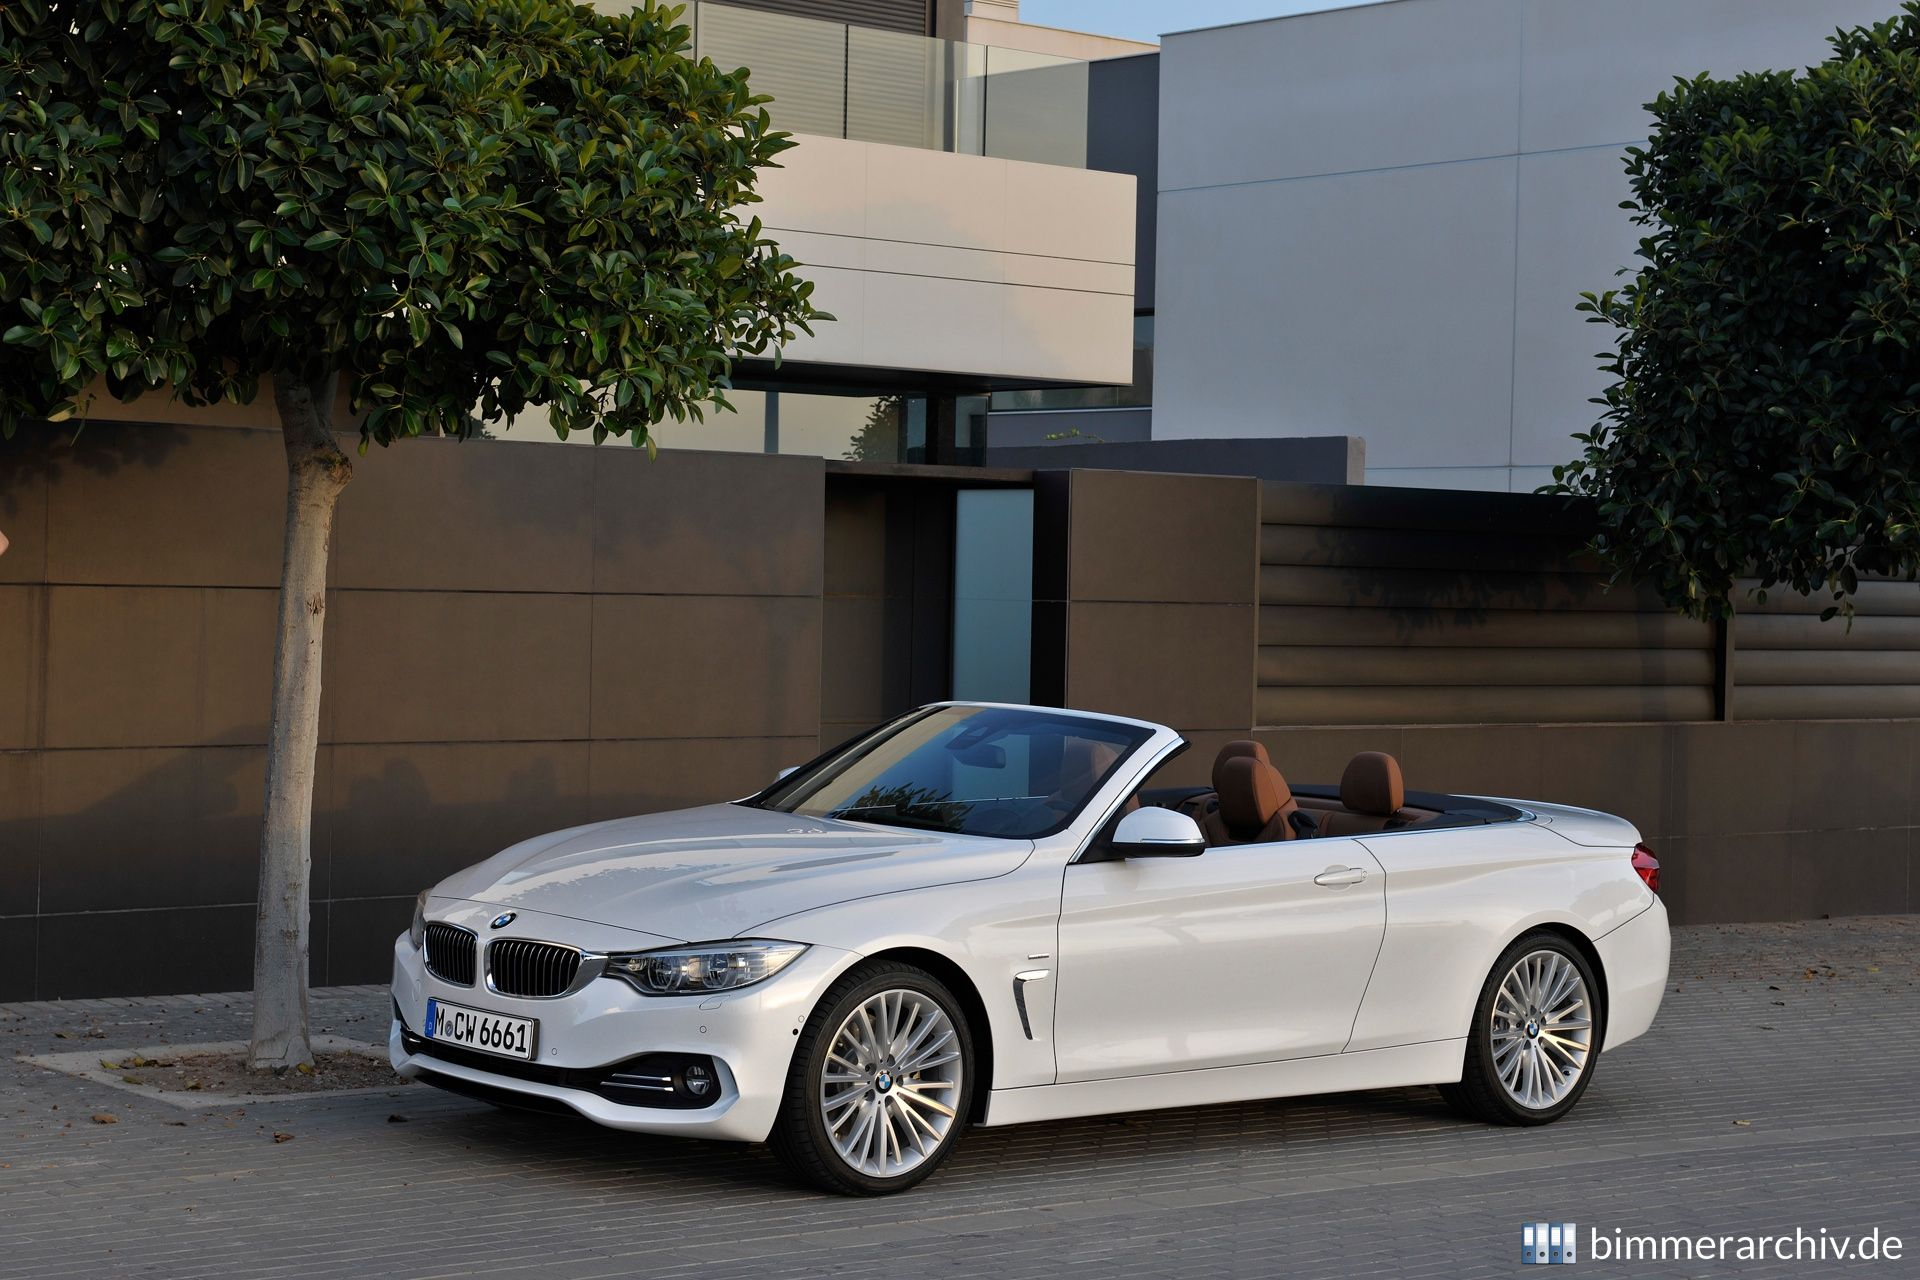 Bmw 428I Convertible >> Model Archive For Bmw Models Bmw 428i Convertible Bmwarchive Org